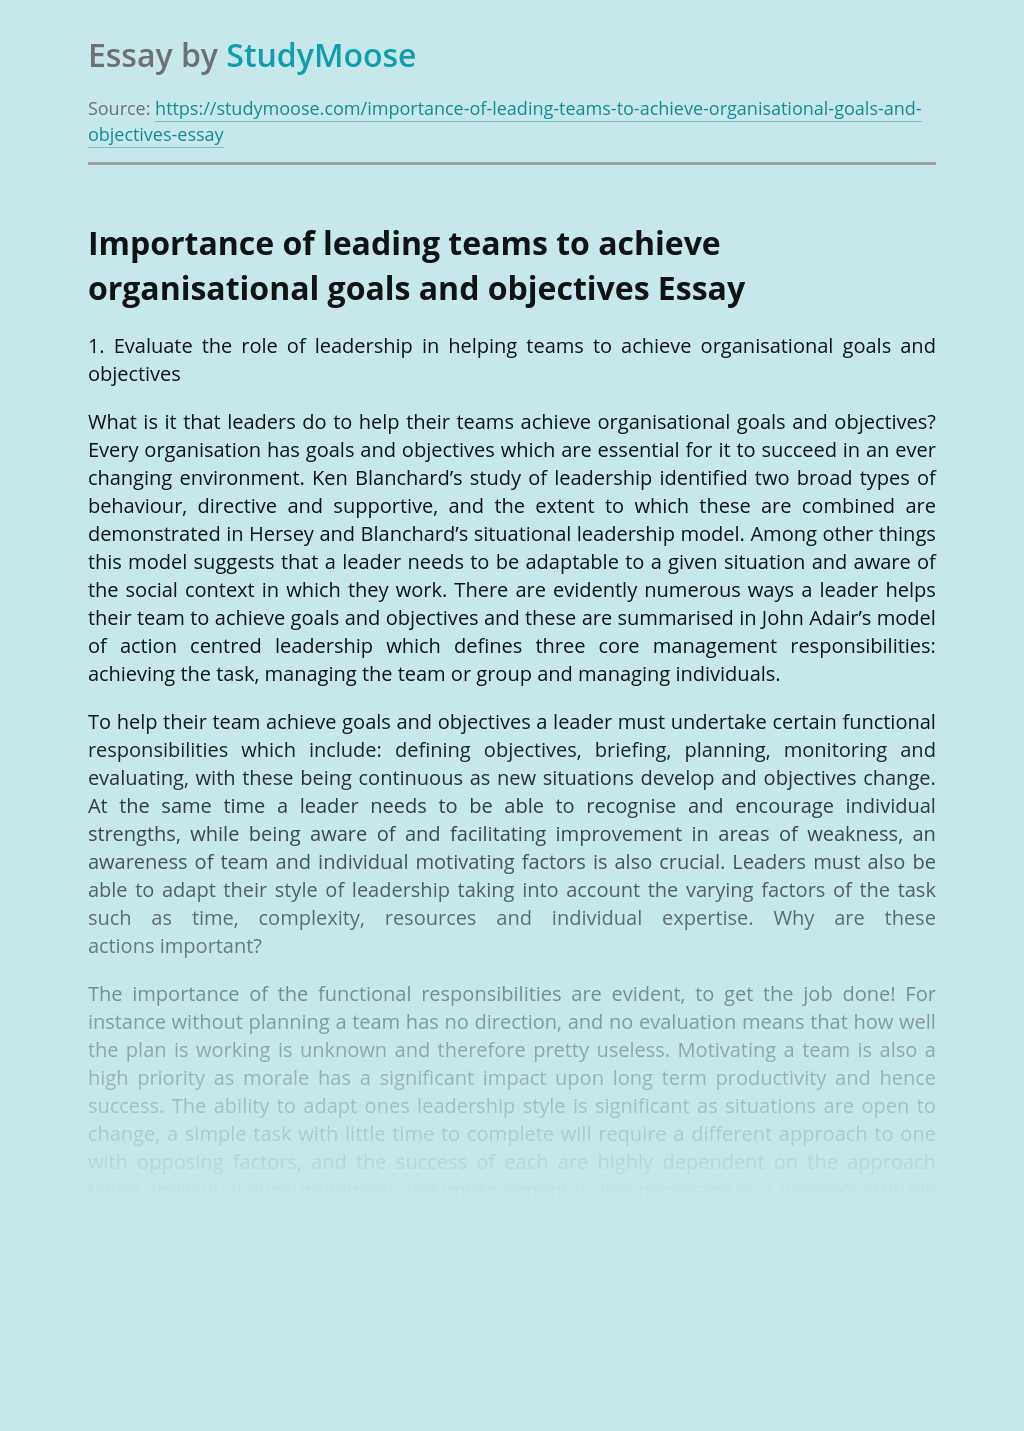 Importance of leading teams to achieve organisational goals and objectives